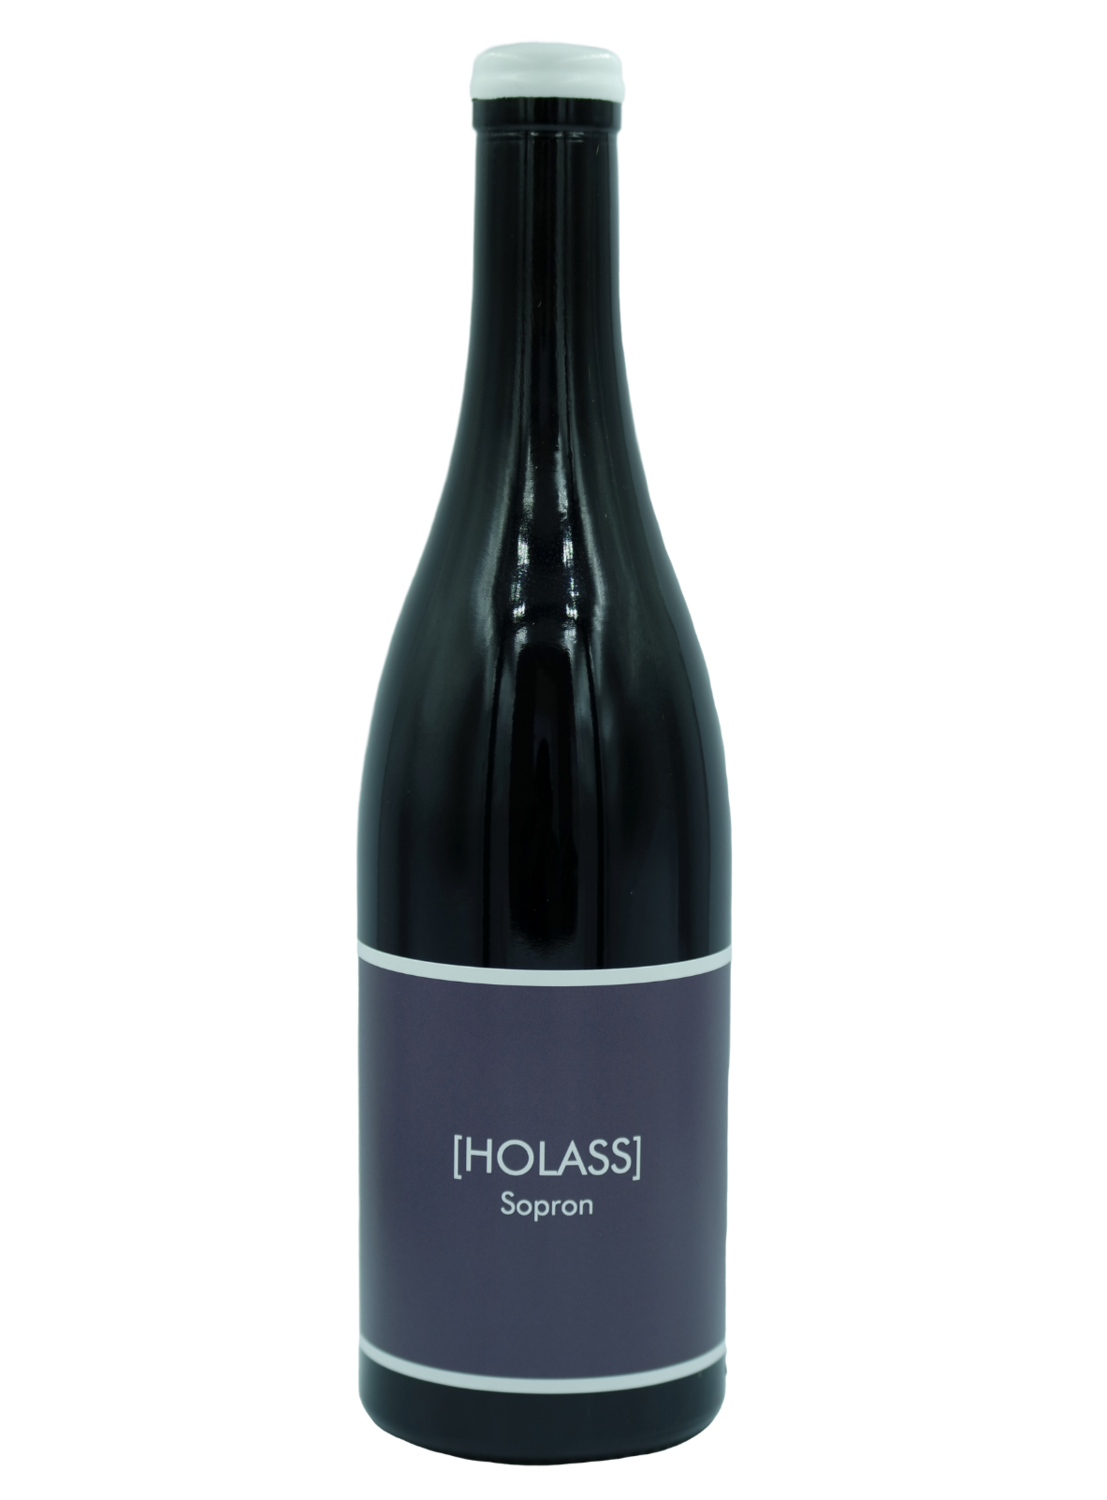 2017 [HOLASS] Sopron, Red 75 cl